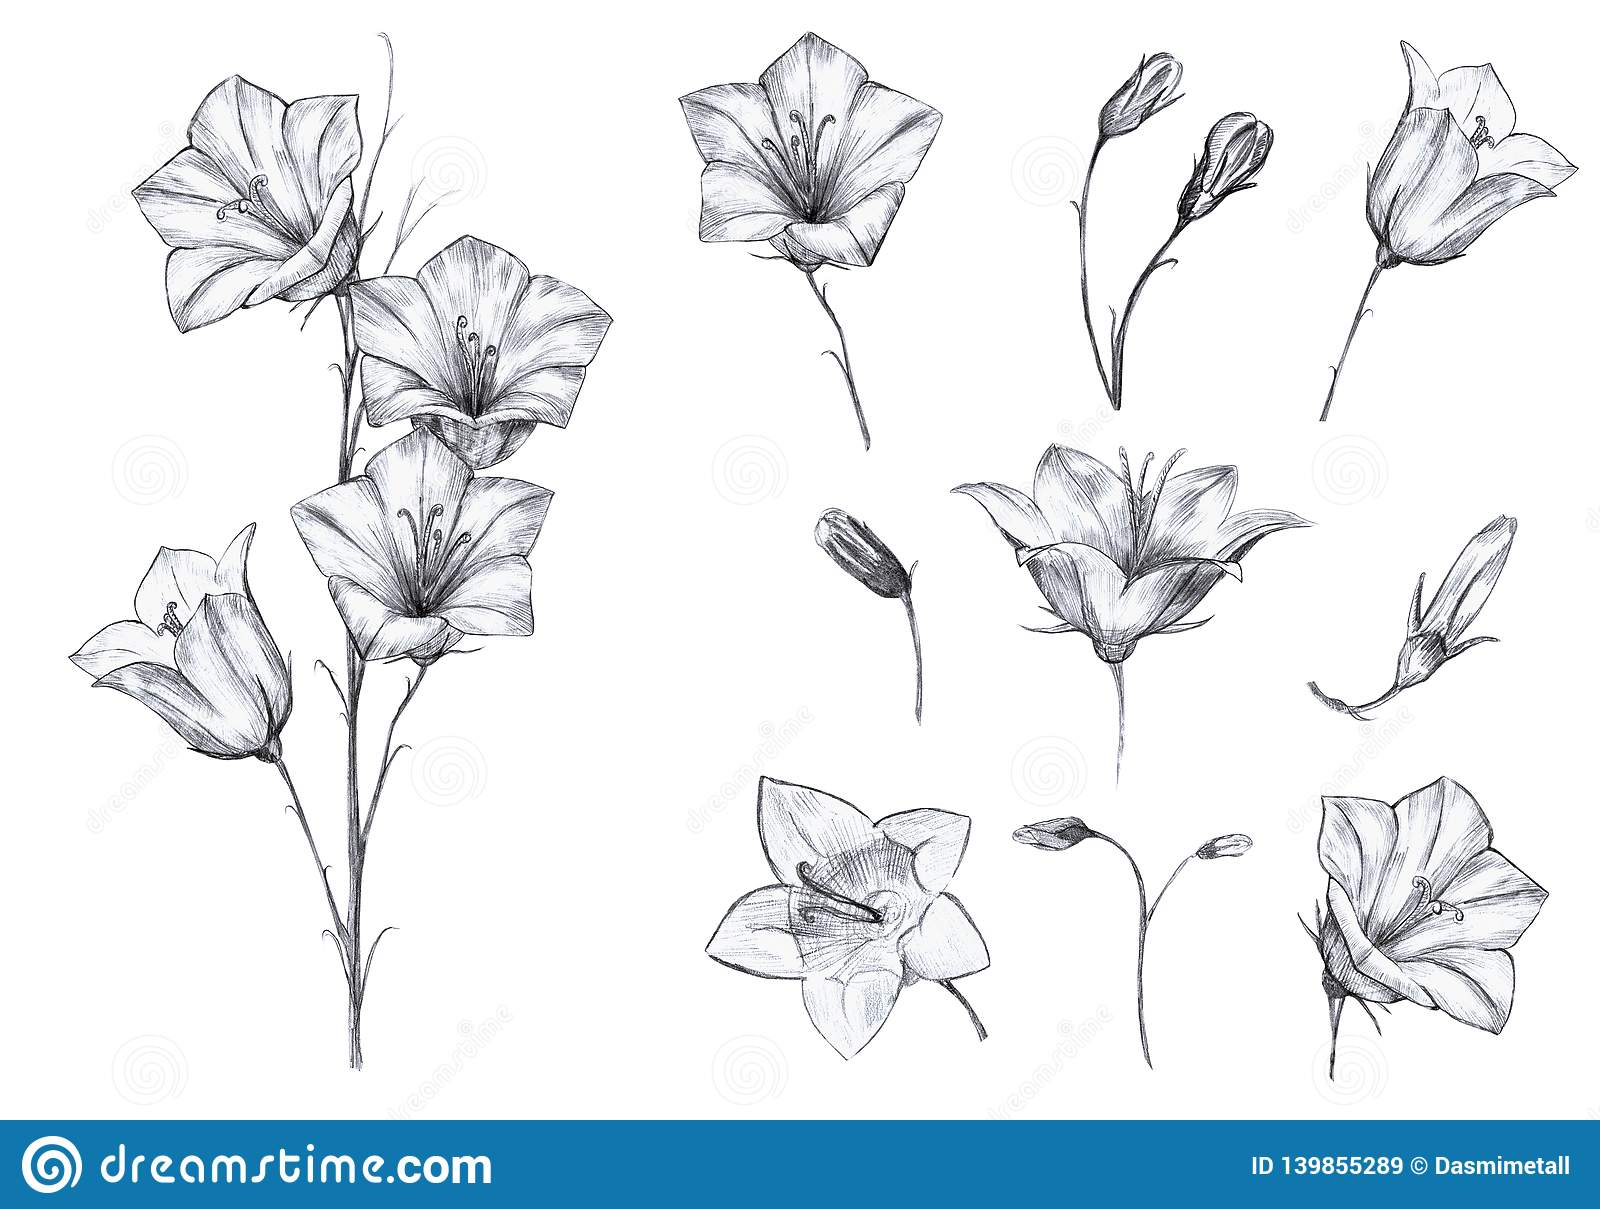 Hand drawn floral set of isolated objects with graphic bluebell flowers, stem, buds on white background